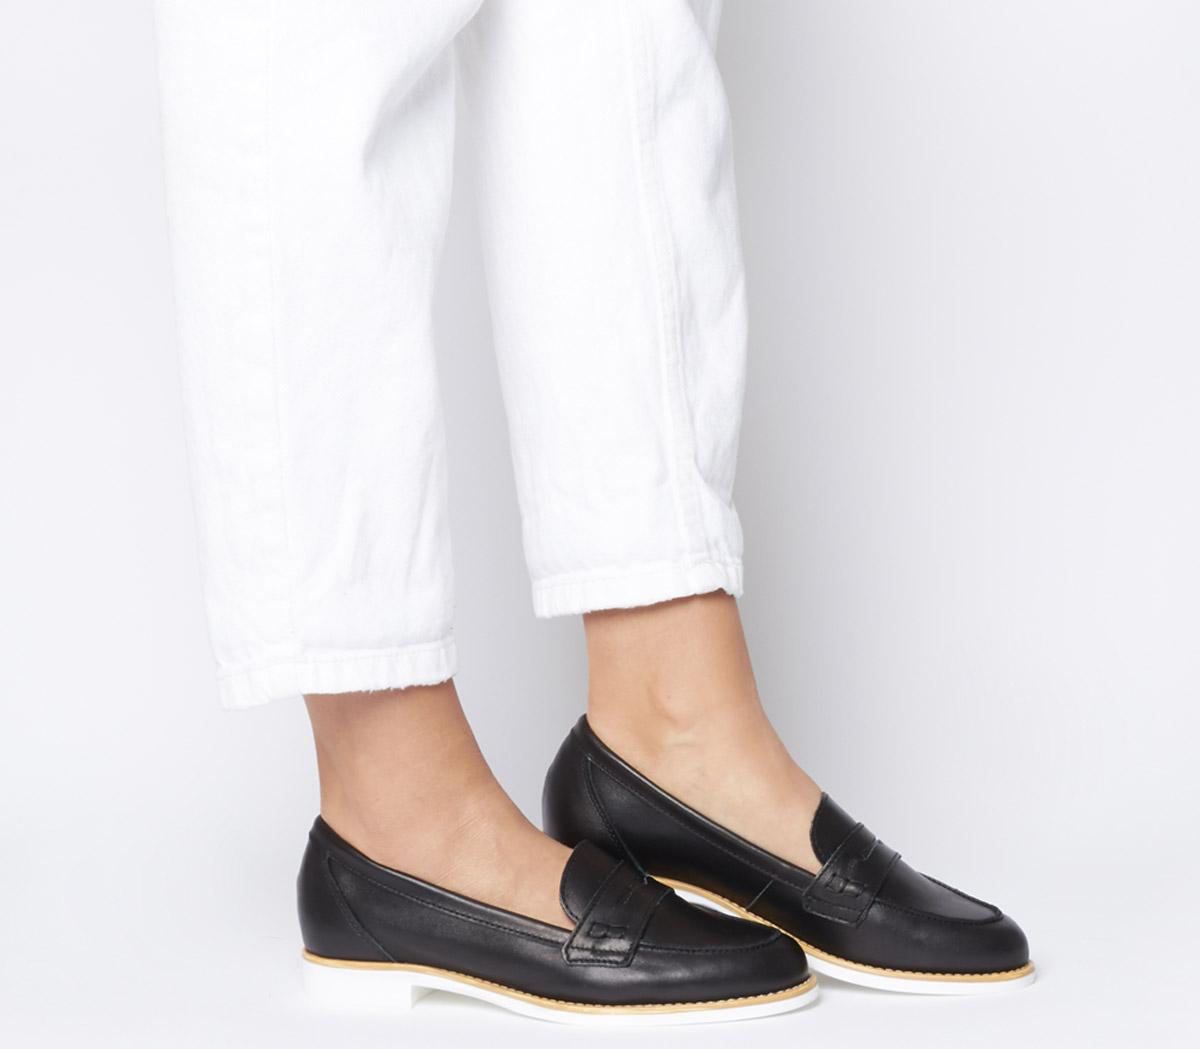 Office Formal Loafer With White Sole